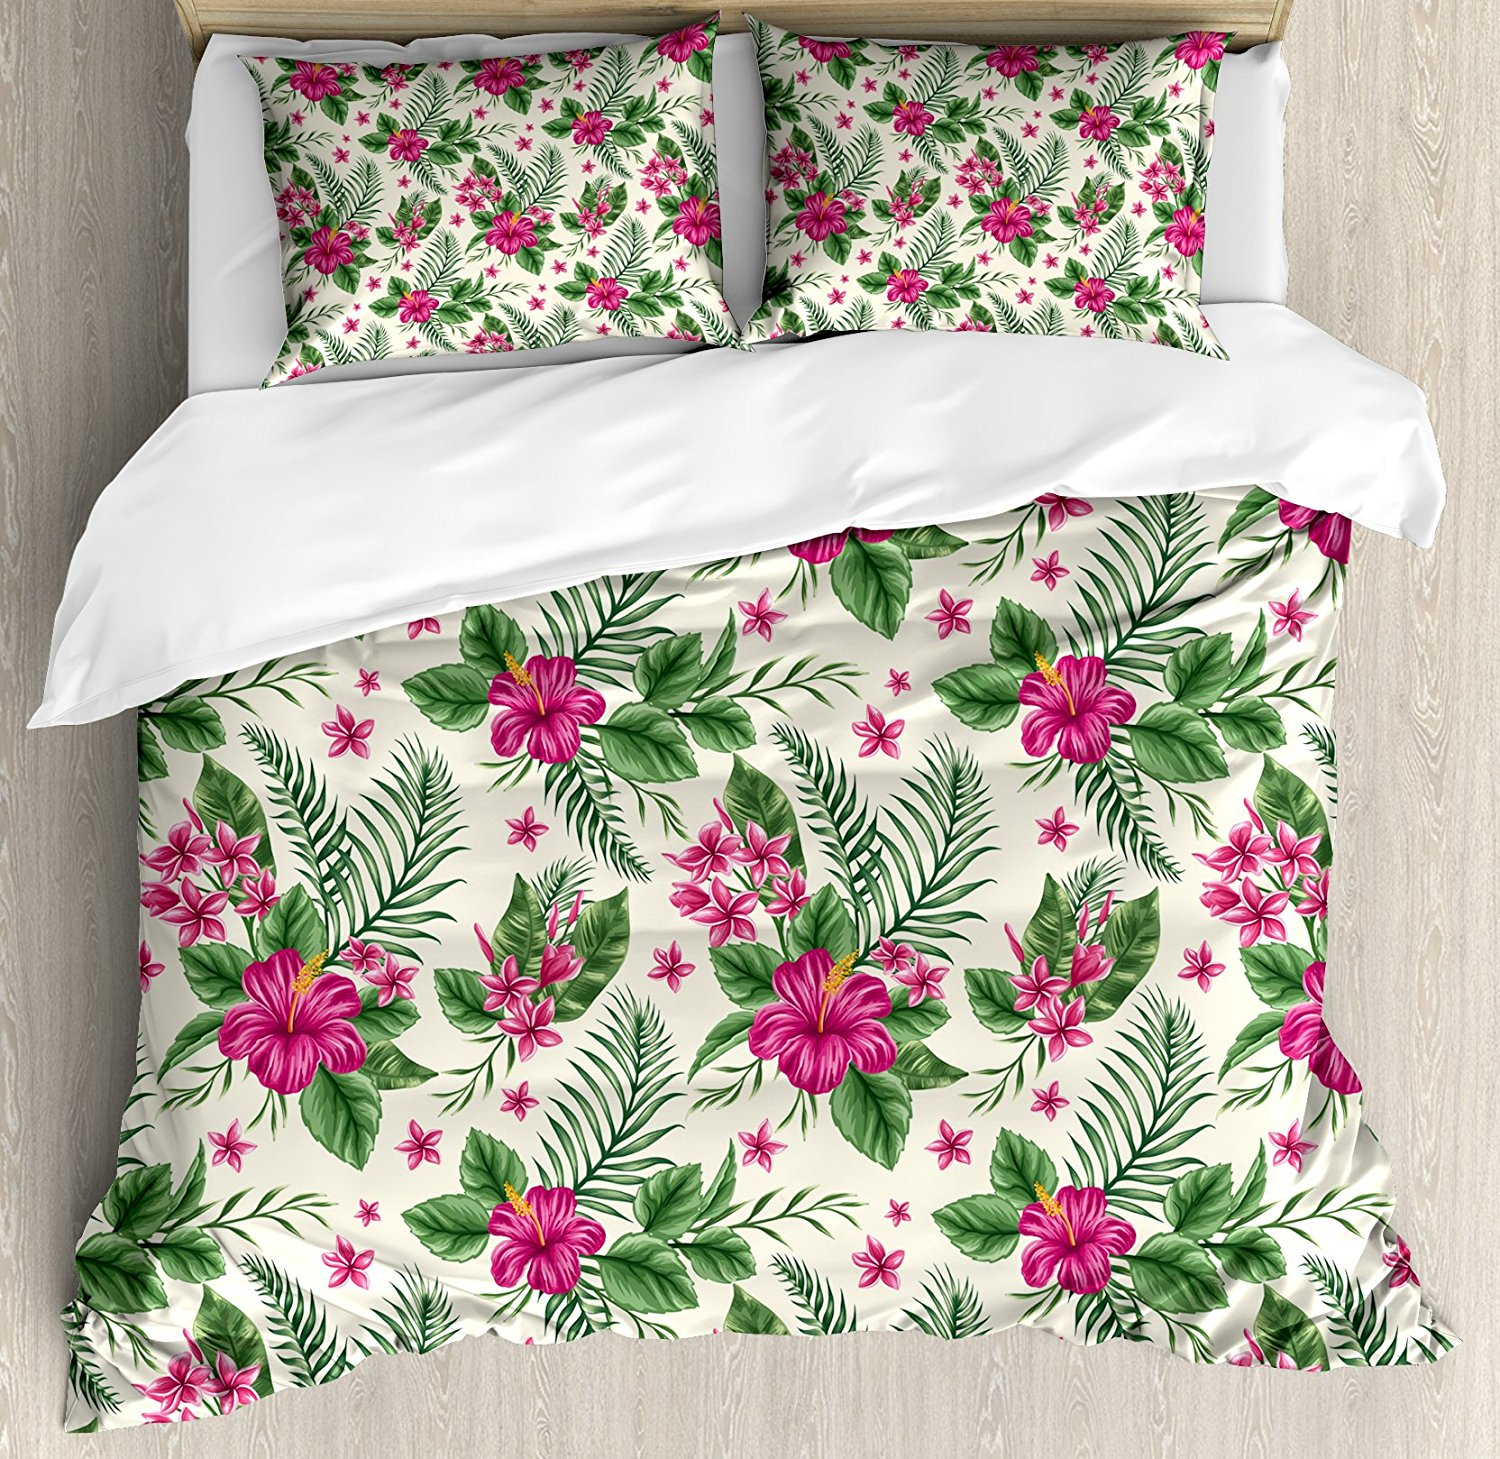 Watercolor Duvet Cover Set, Plumeria and Hibiscus Flora Tropical Island Nature Aloha Hawaii Jungle, 4 Piece Bedding Set